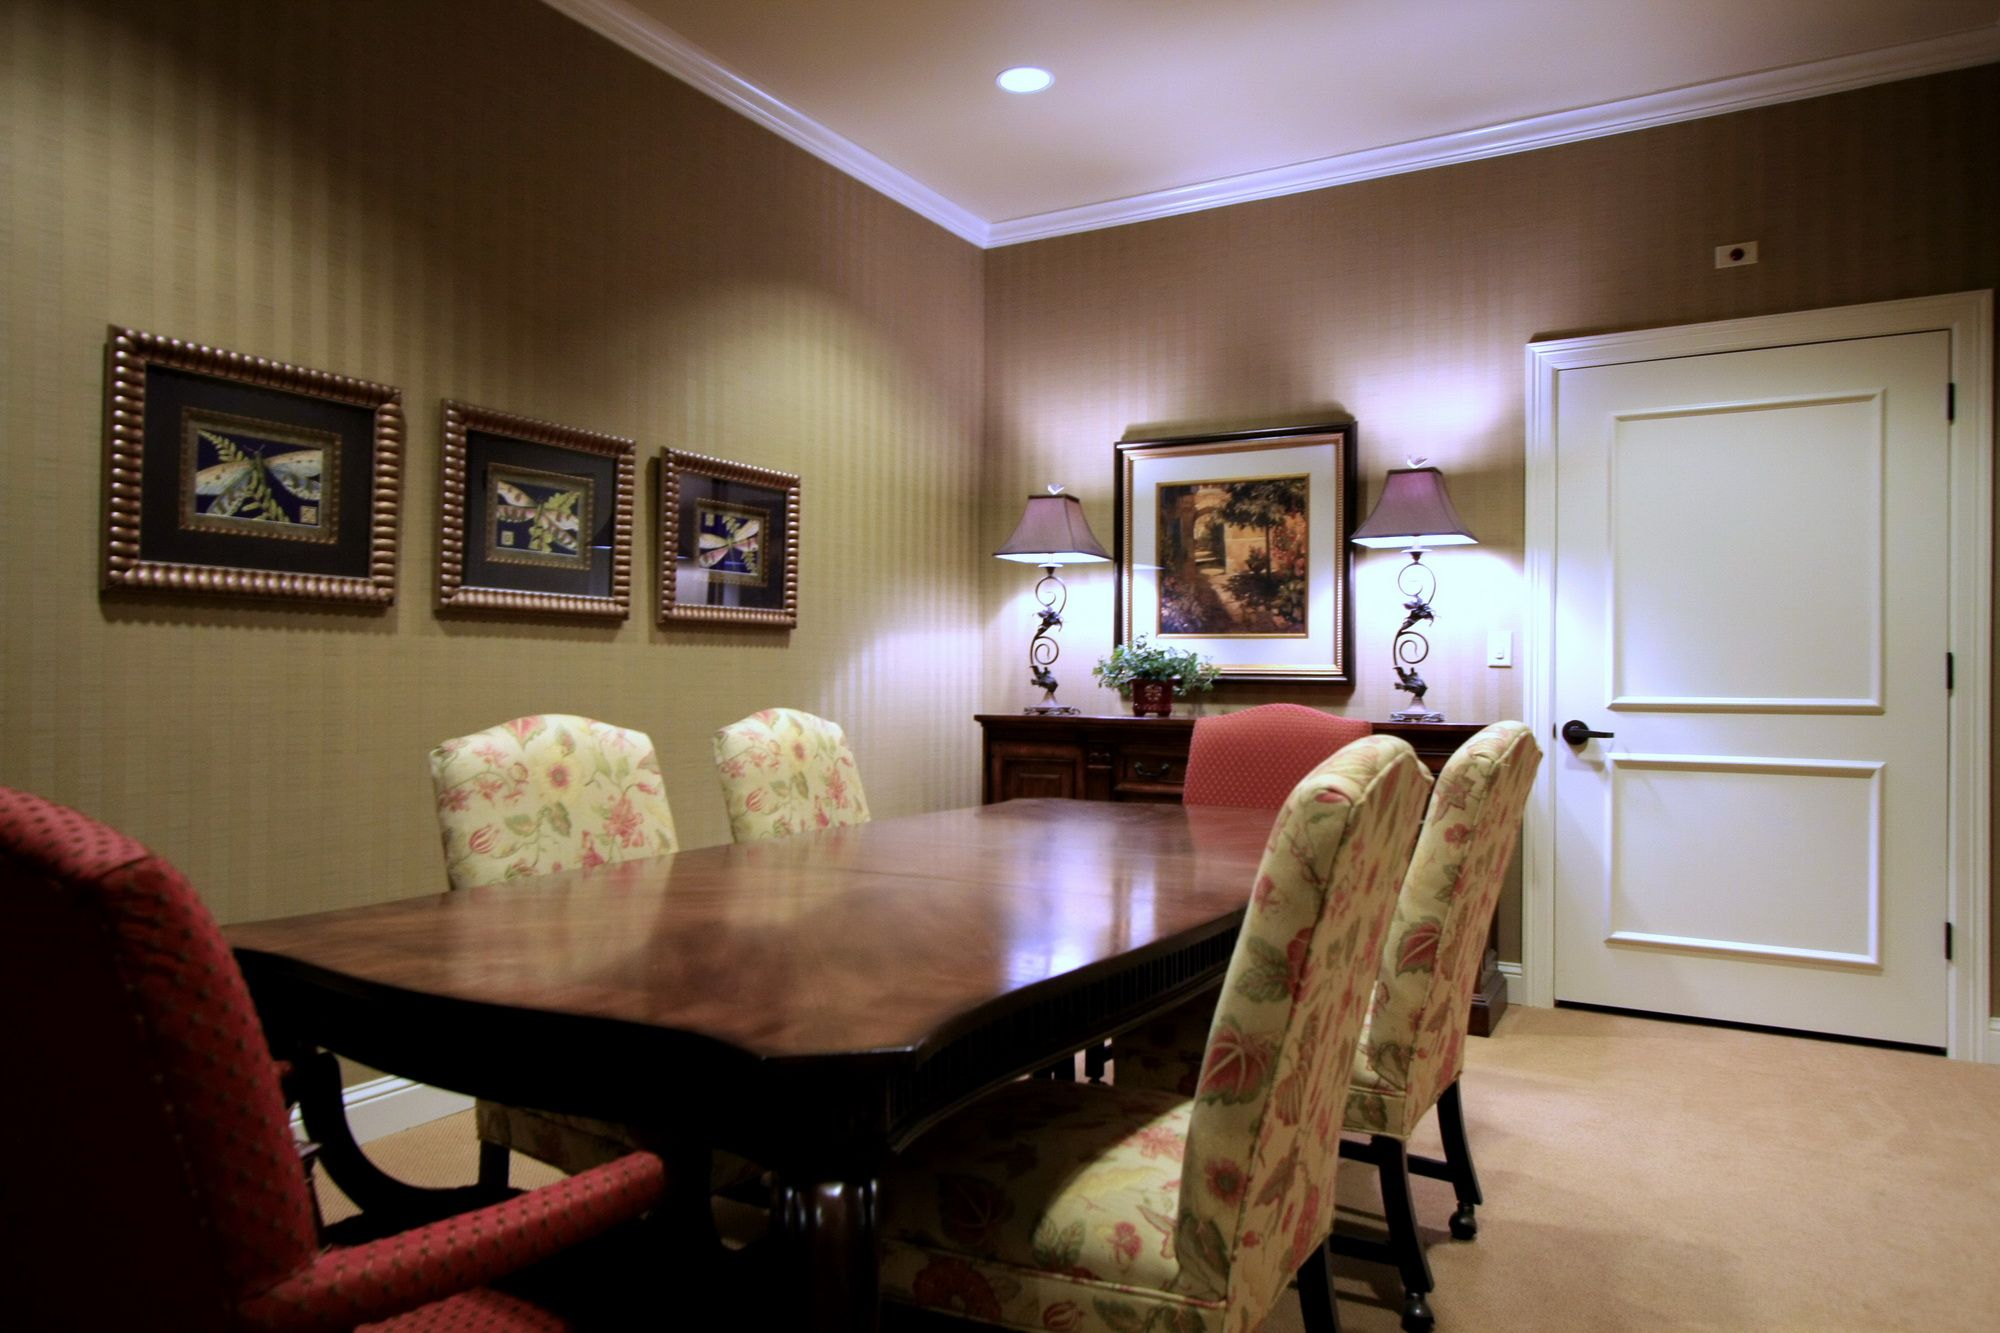 Biggers Funeral Home: Conference Room  Interiors  Pinterest